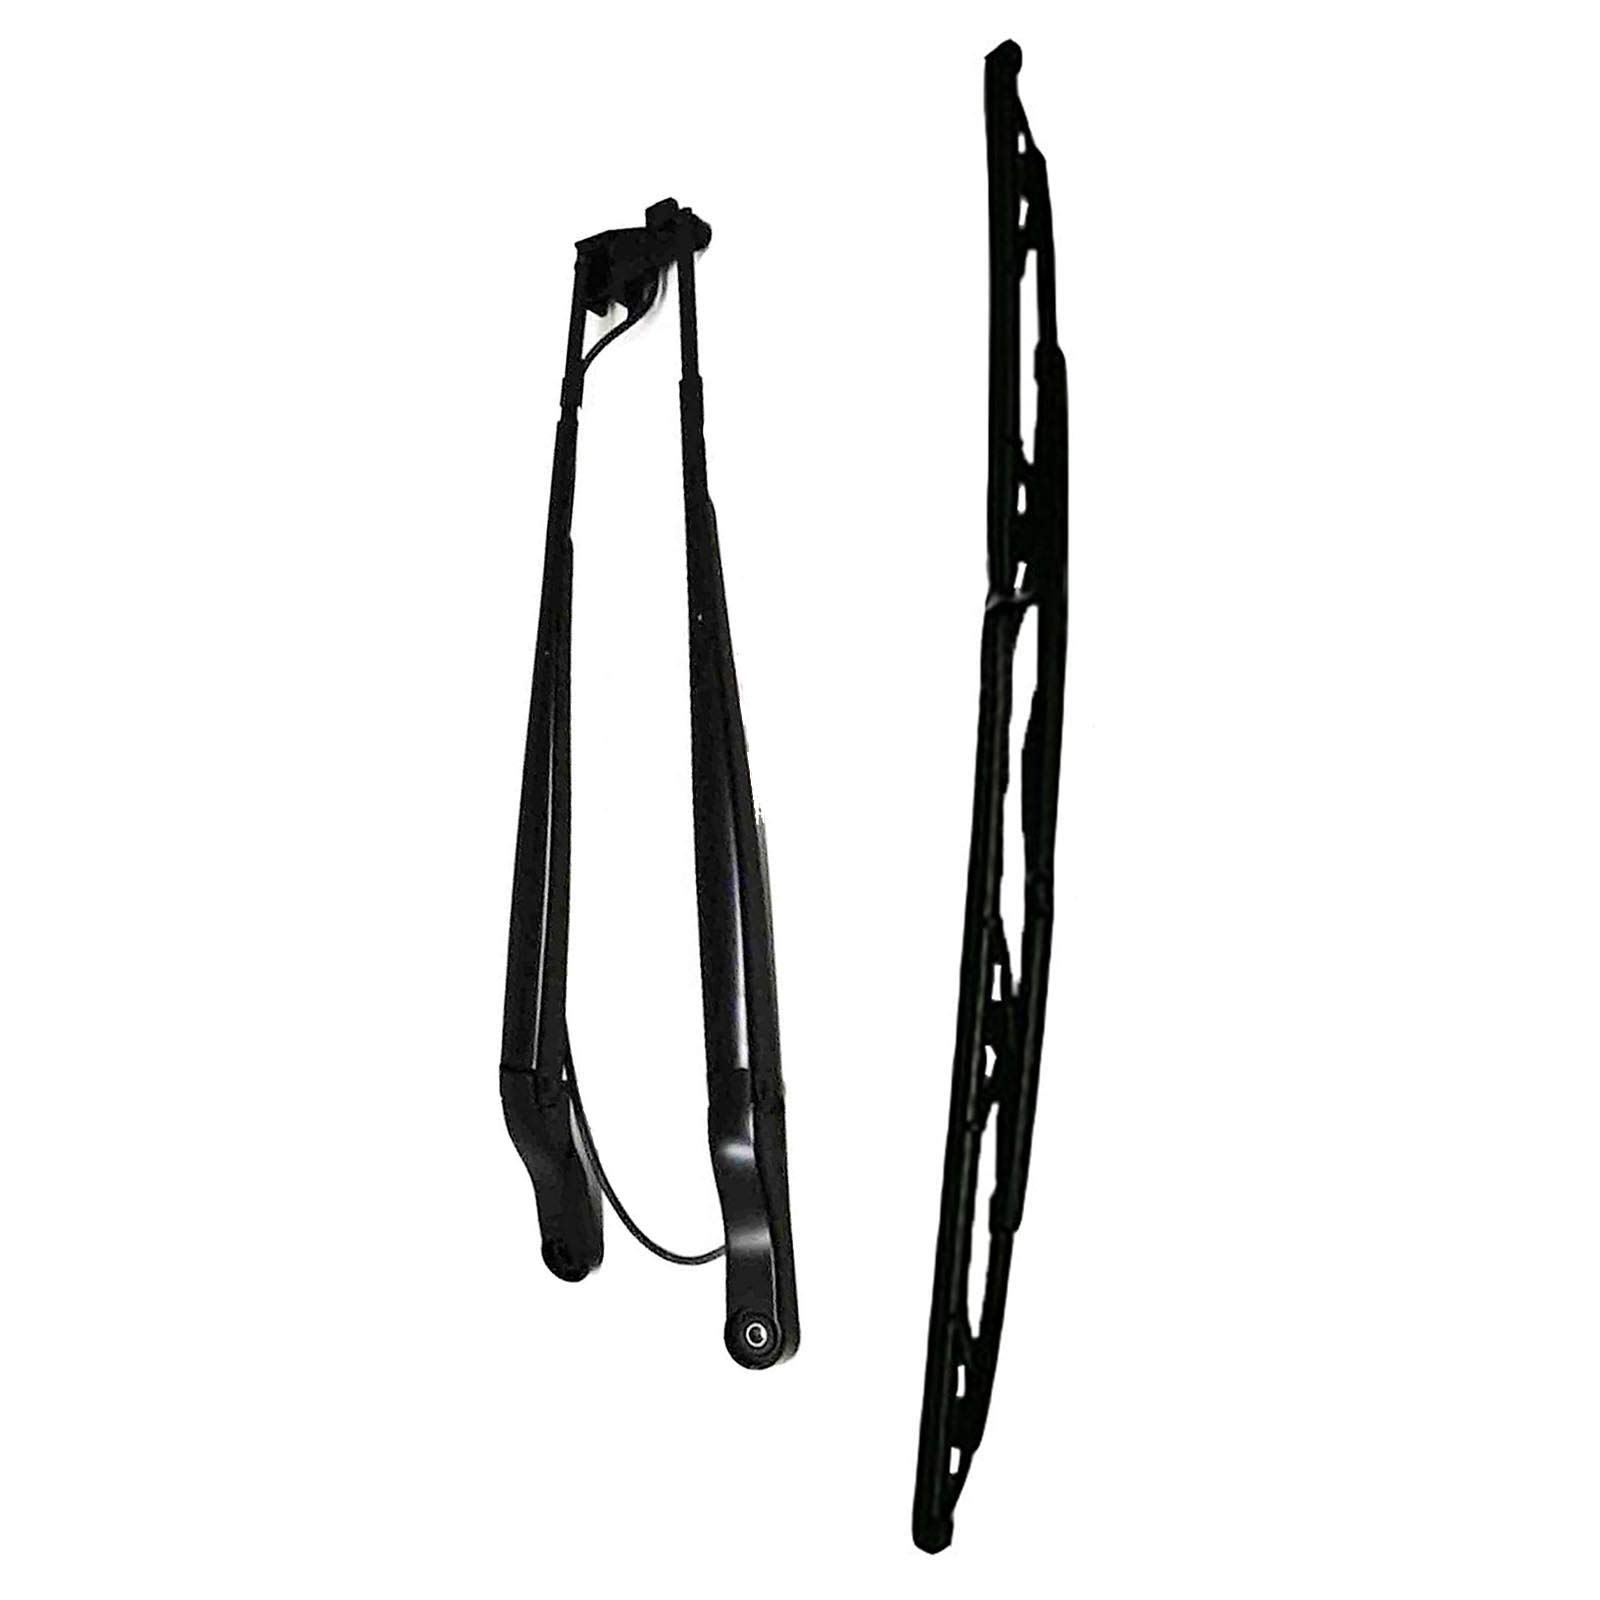 Solarhome Wiper Arm 7168953 + Wiper Blade 7168954 for Bobcat Skid Steer Loaders S630 S650 S740 S750 S770 S850 S450 S510 S530 S550 T450 T550 T590 T630 T650 T750 T770 T870 A770 by Solarhome